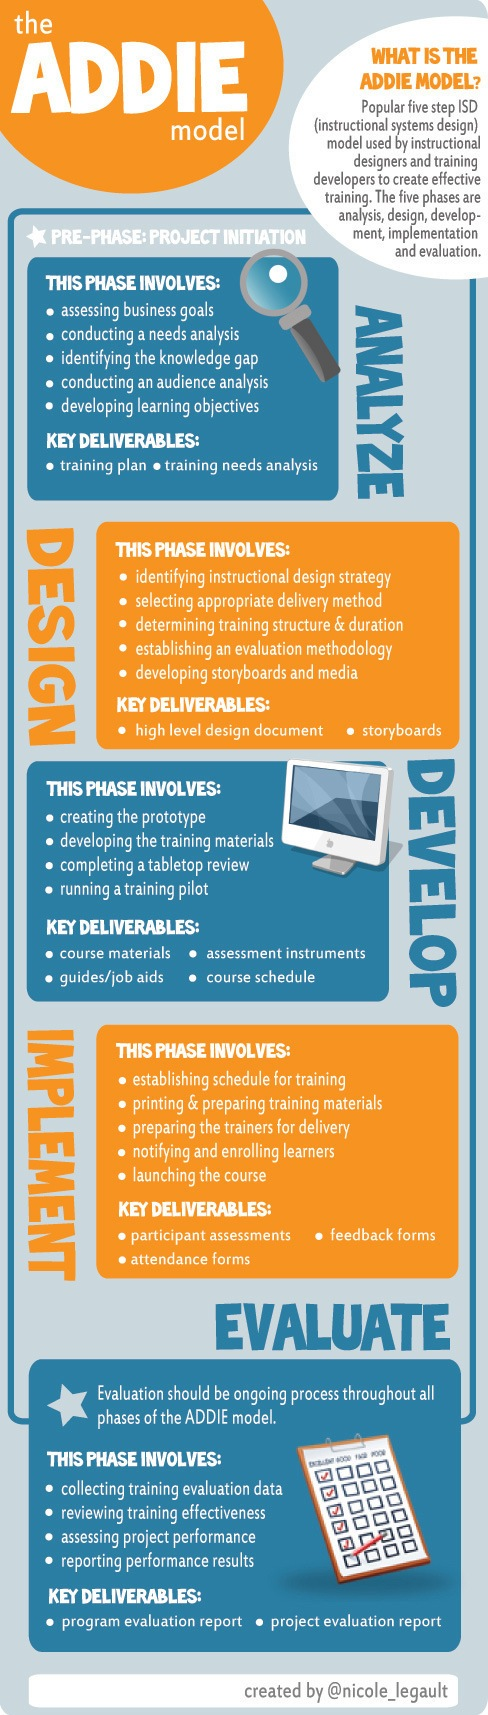 The ADDIE Instructional Design Model Infographic